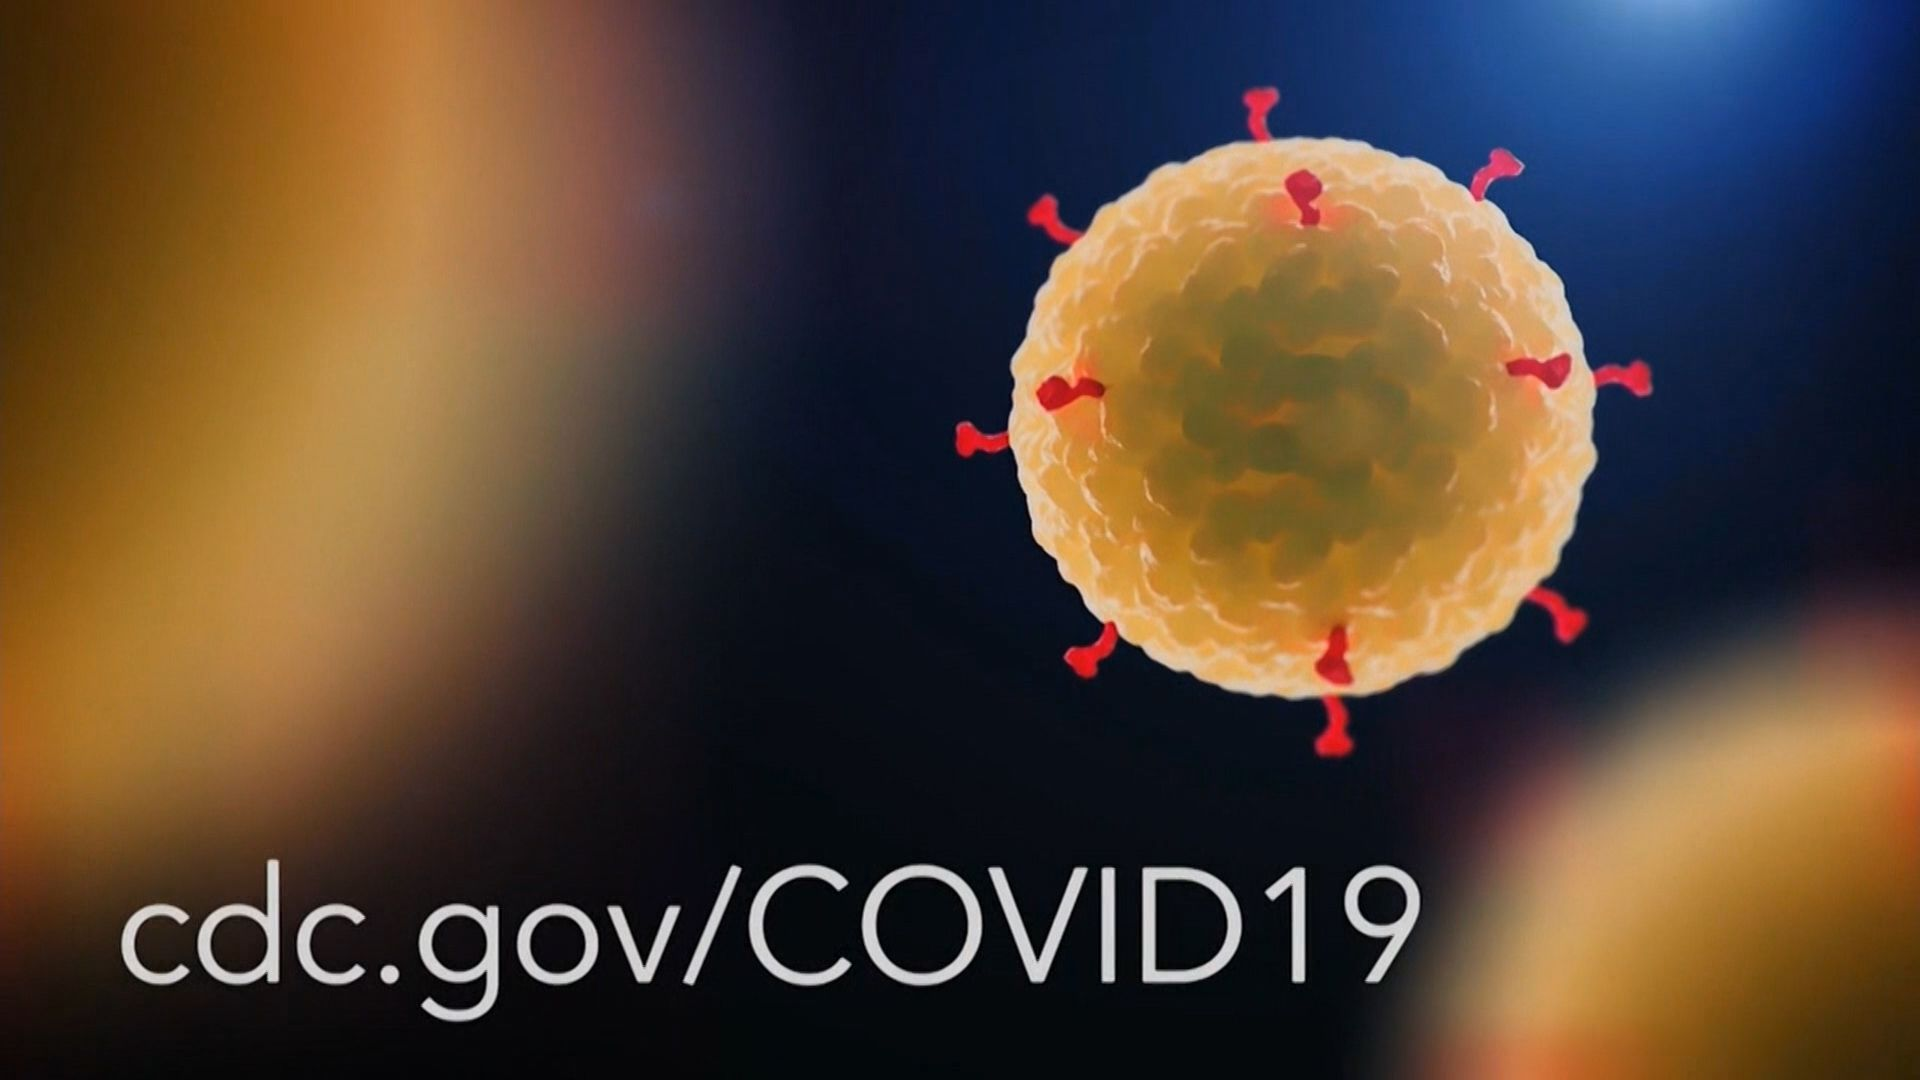 CDC---kw---Healthcare_category---ABC_-_April_22--2020---dtc---USA---English---TV_commercial---30_seconds.mp4